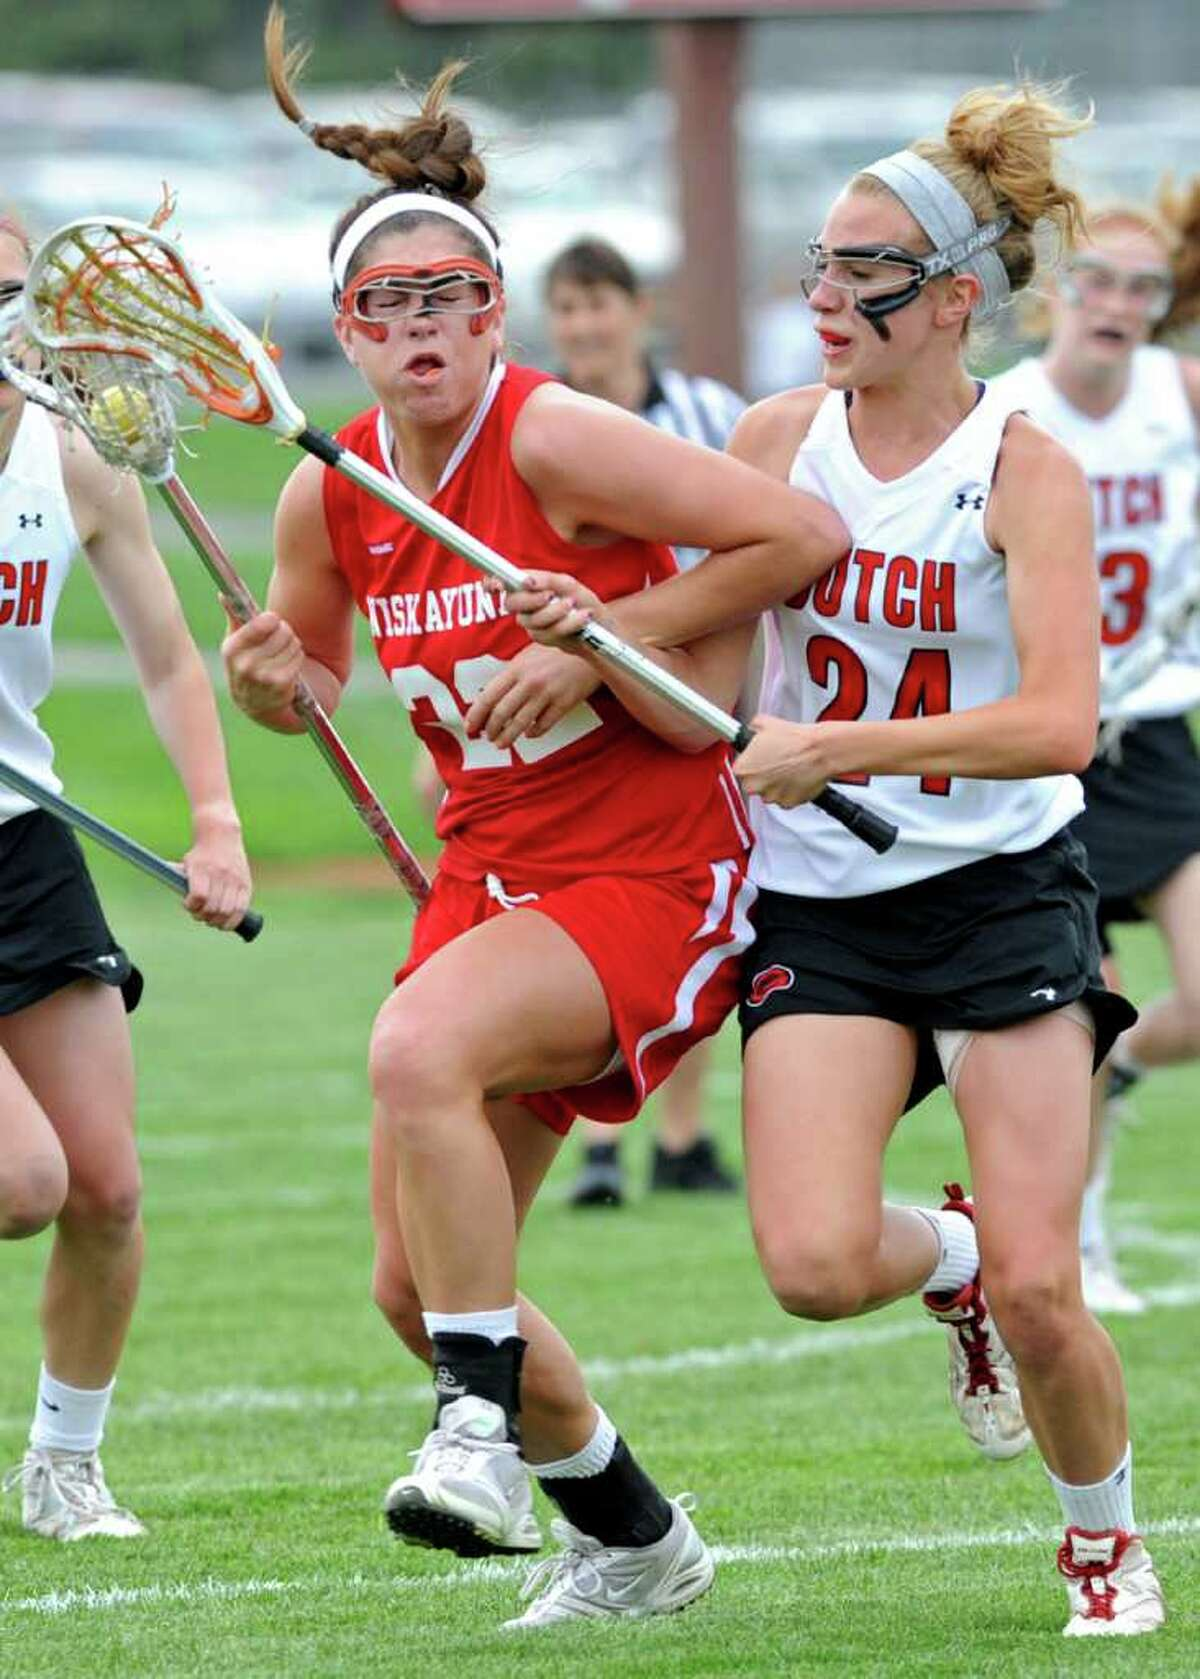 Niskayuna's Kayla Treanor is defended by Guilderland's Shelby Iapoce during a lacrosse game in Guilderland, N.Y. on Tuesday May 3, 2011. (Lori Van Buren / Times Union)